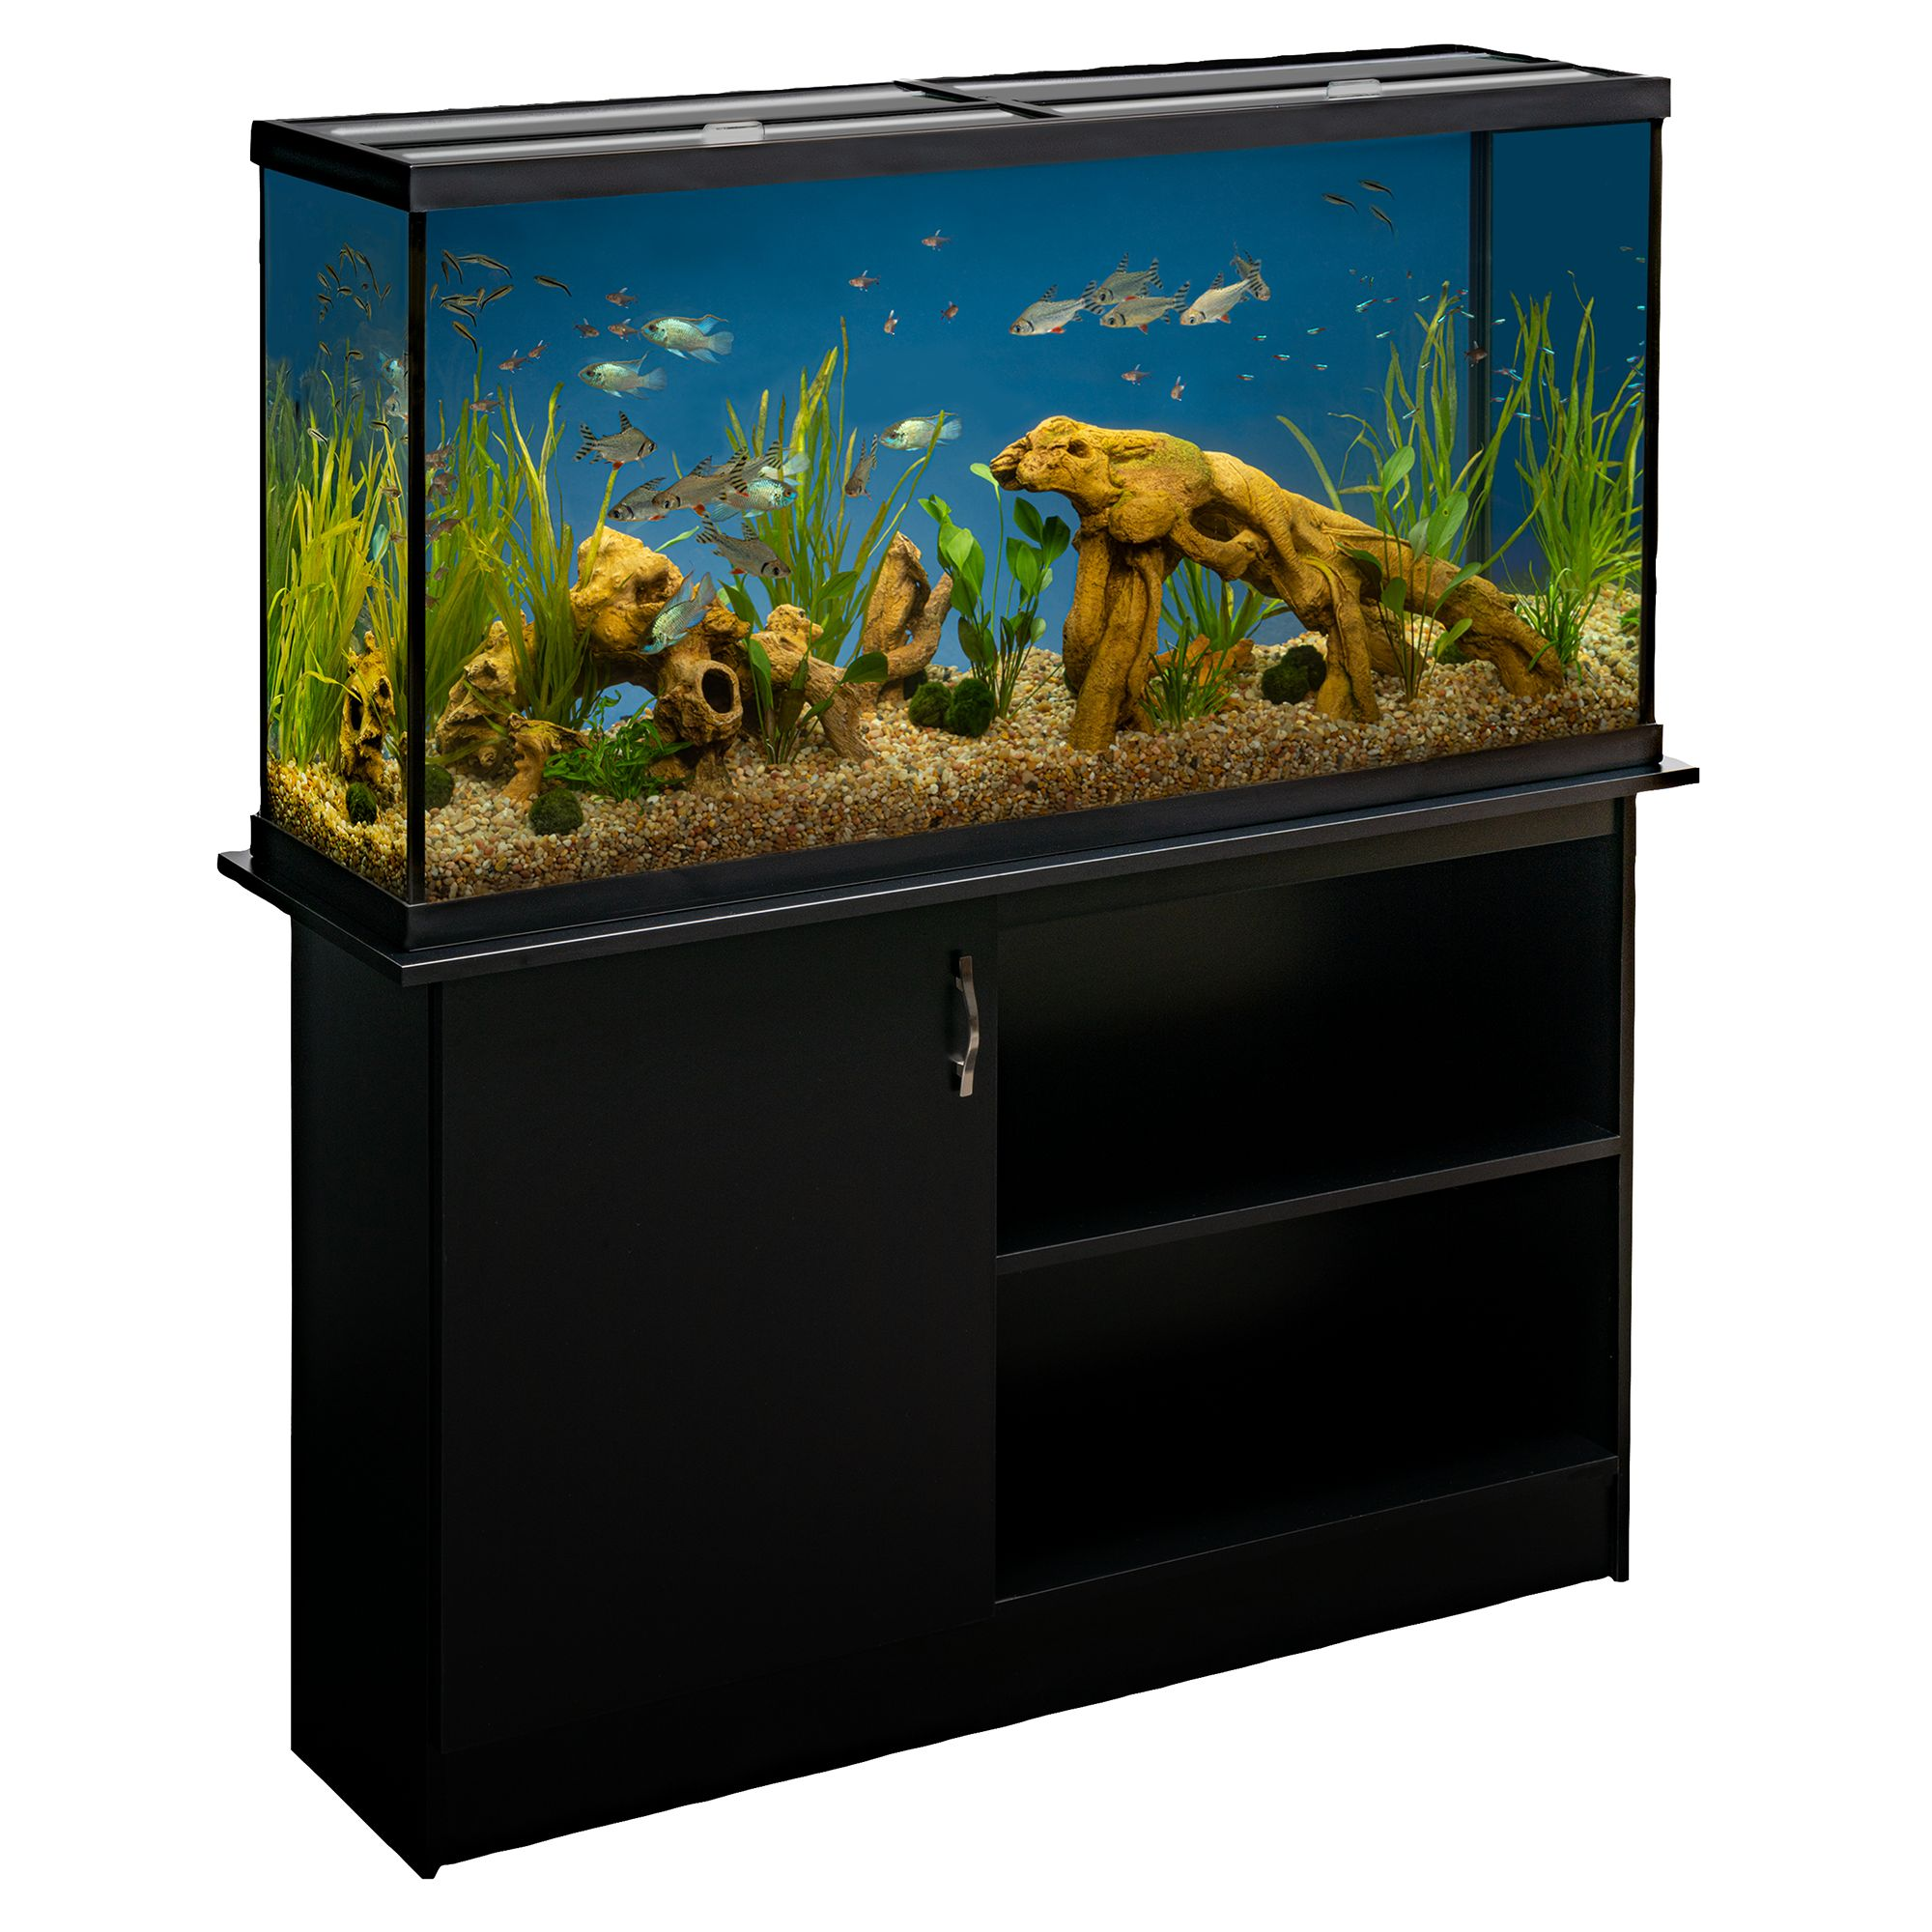 Fish aquarium for sale in lahore - Aquariums